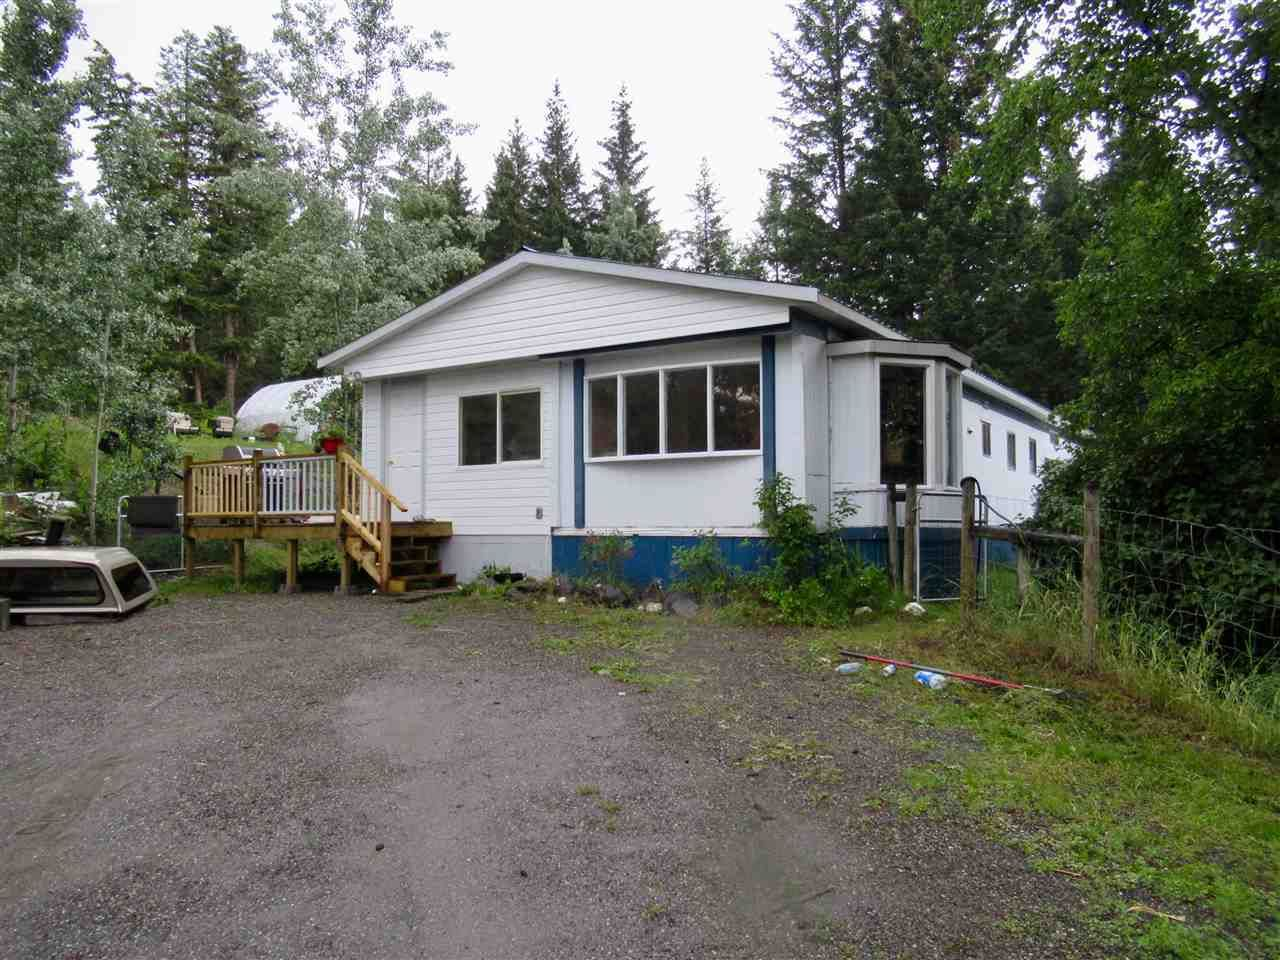 Main Photo: 270 JEFFERSON Road: 150 Mile House Manufactured Home for sale (Williams Lake (Zone 27))  : MLS®# R2385639